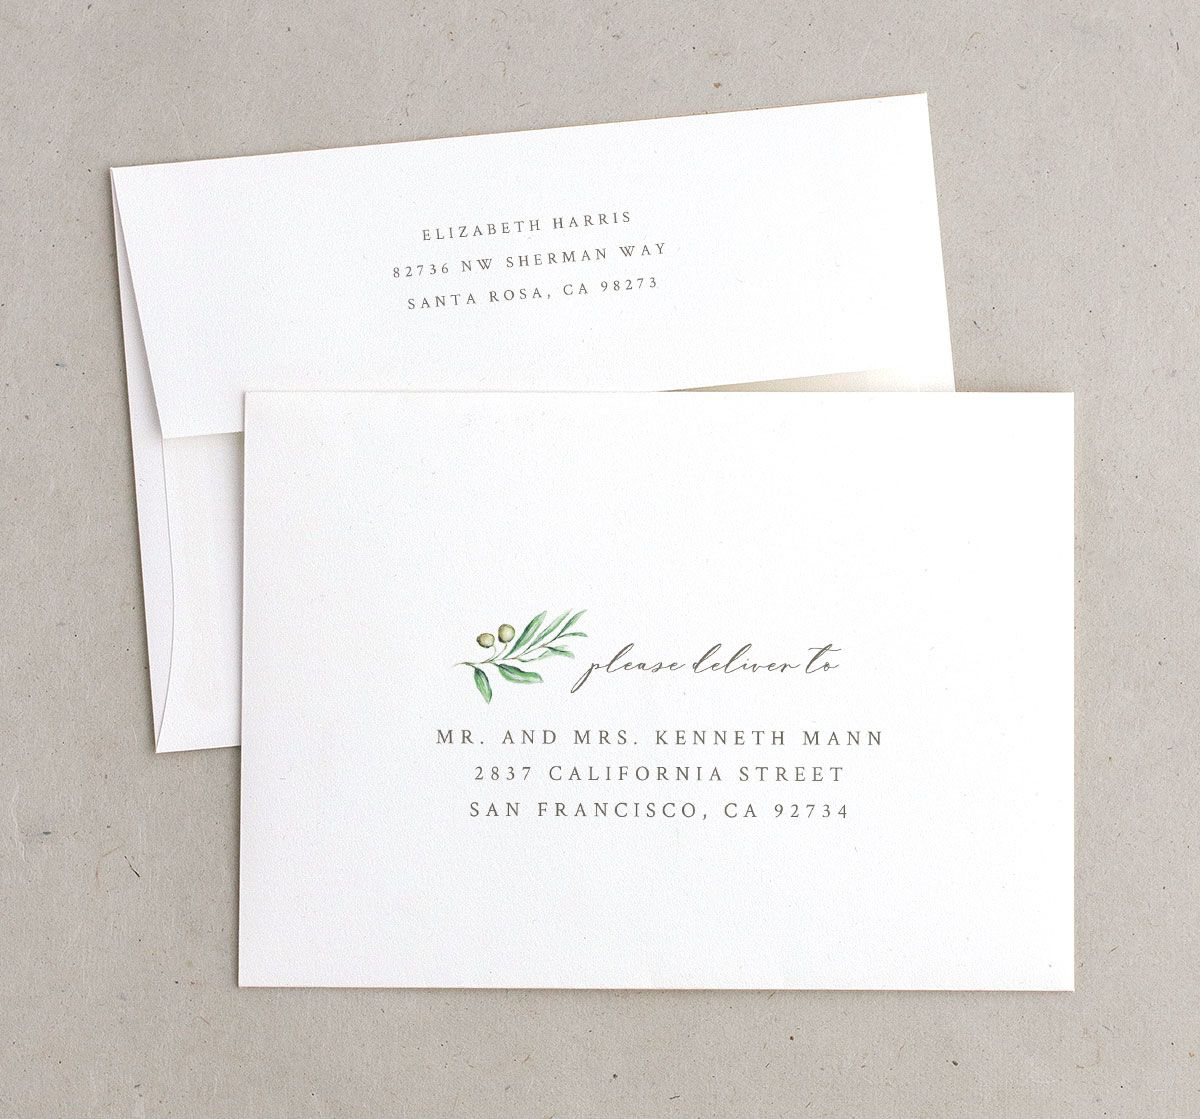 Painted Winery wedding invitation envelopes